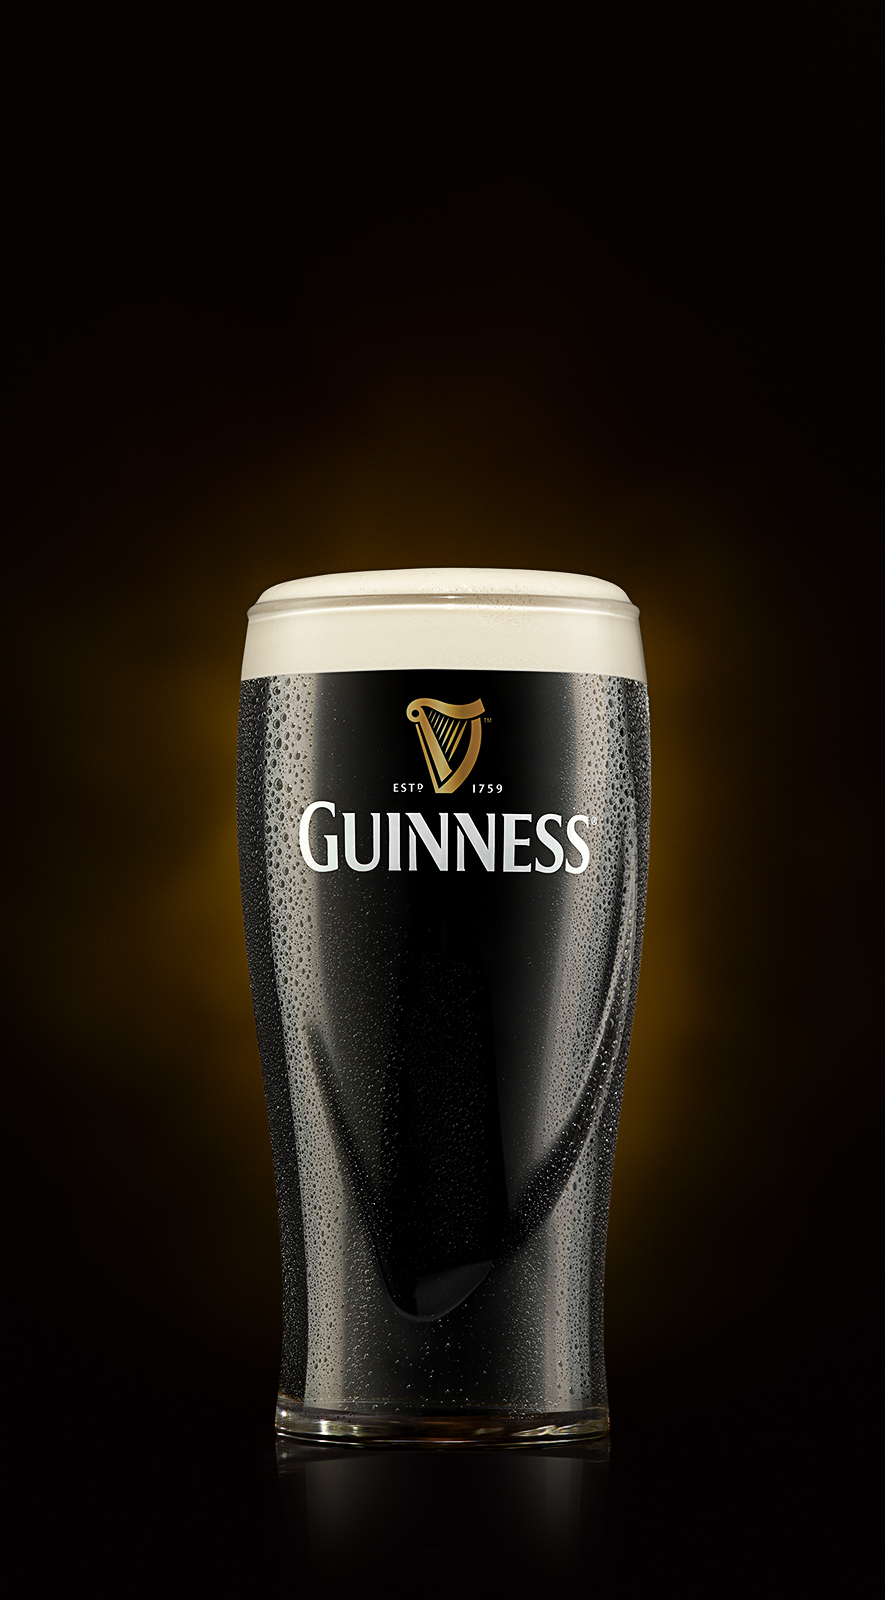 Guinness 174 Foreign Extra Stout Guinness 174